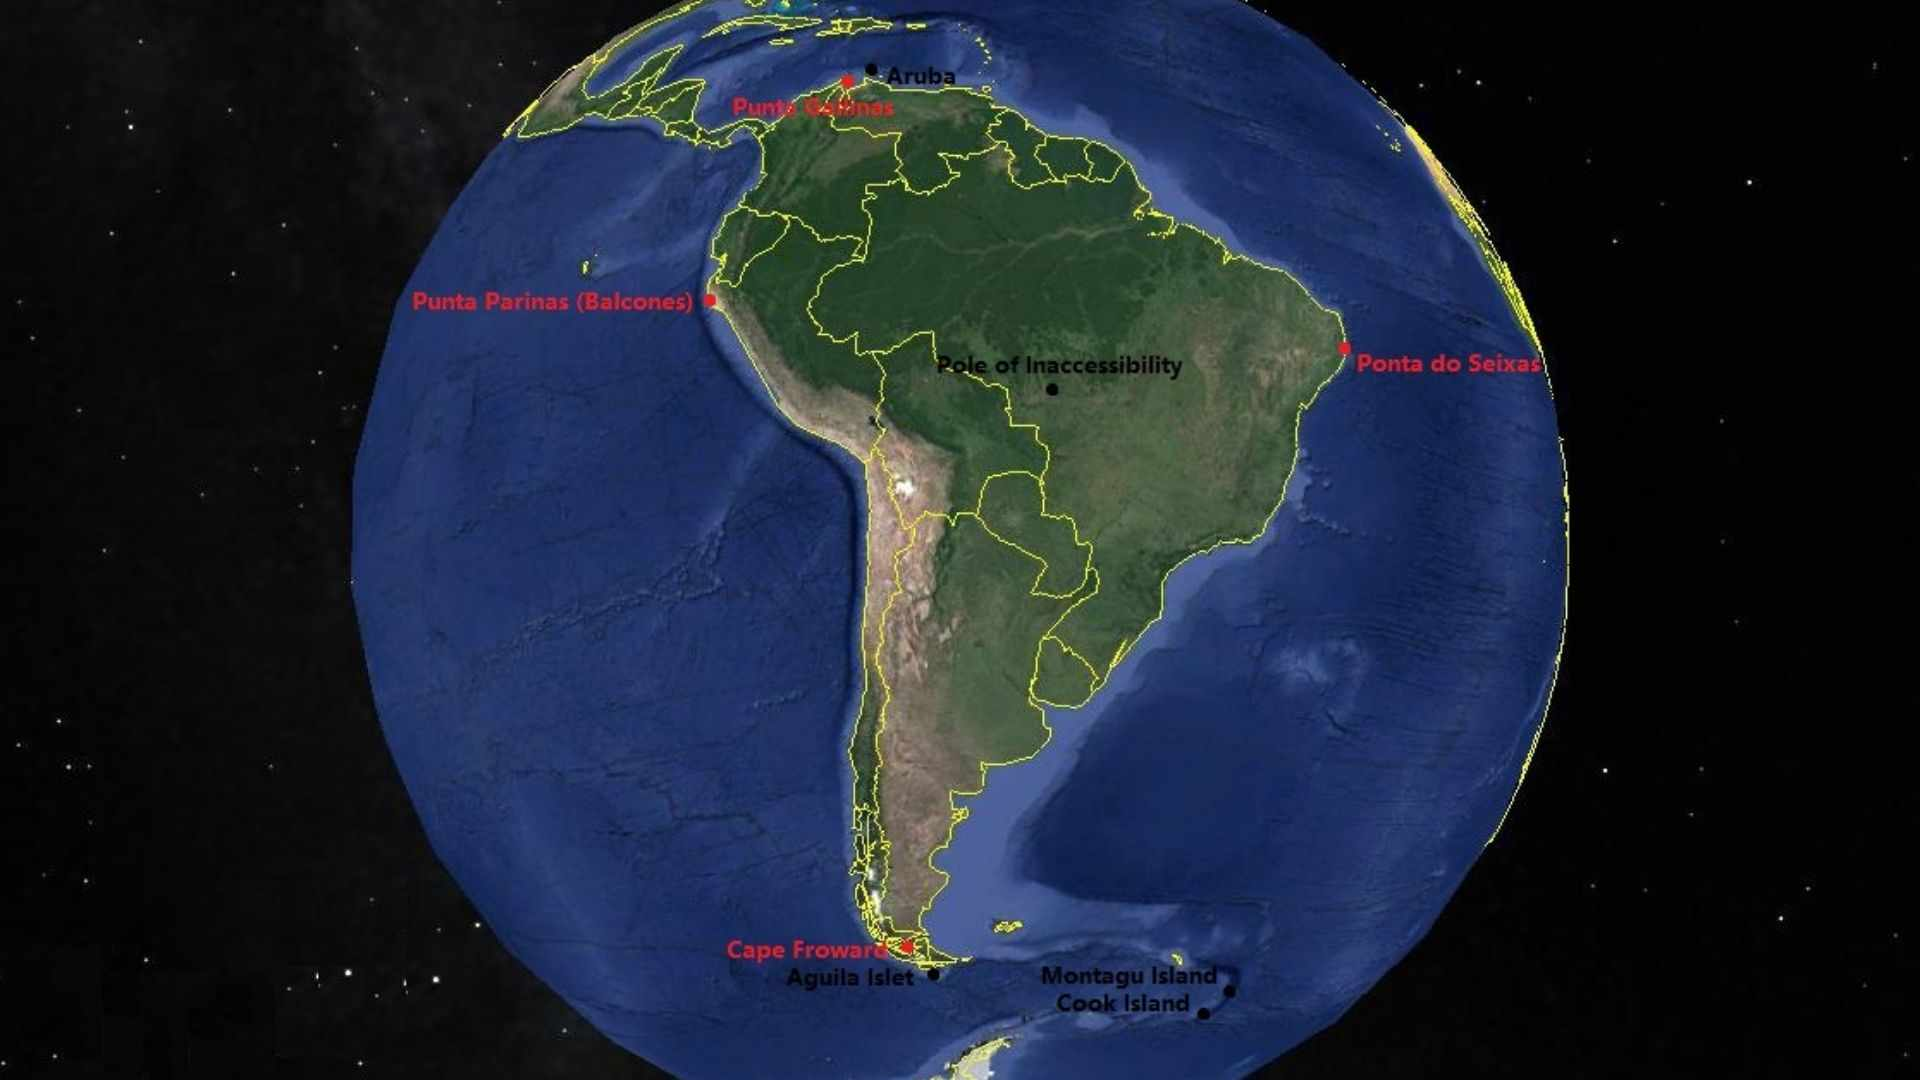 The extreme points of South America